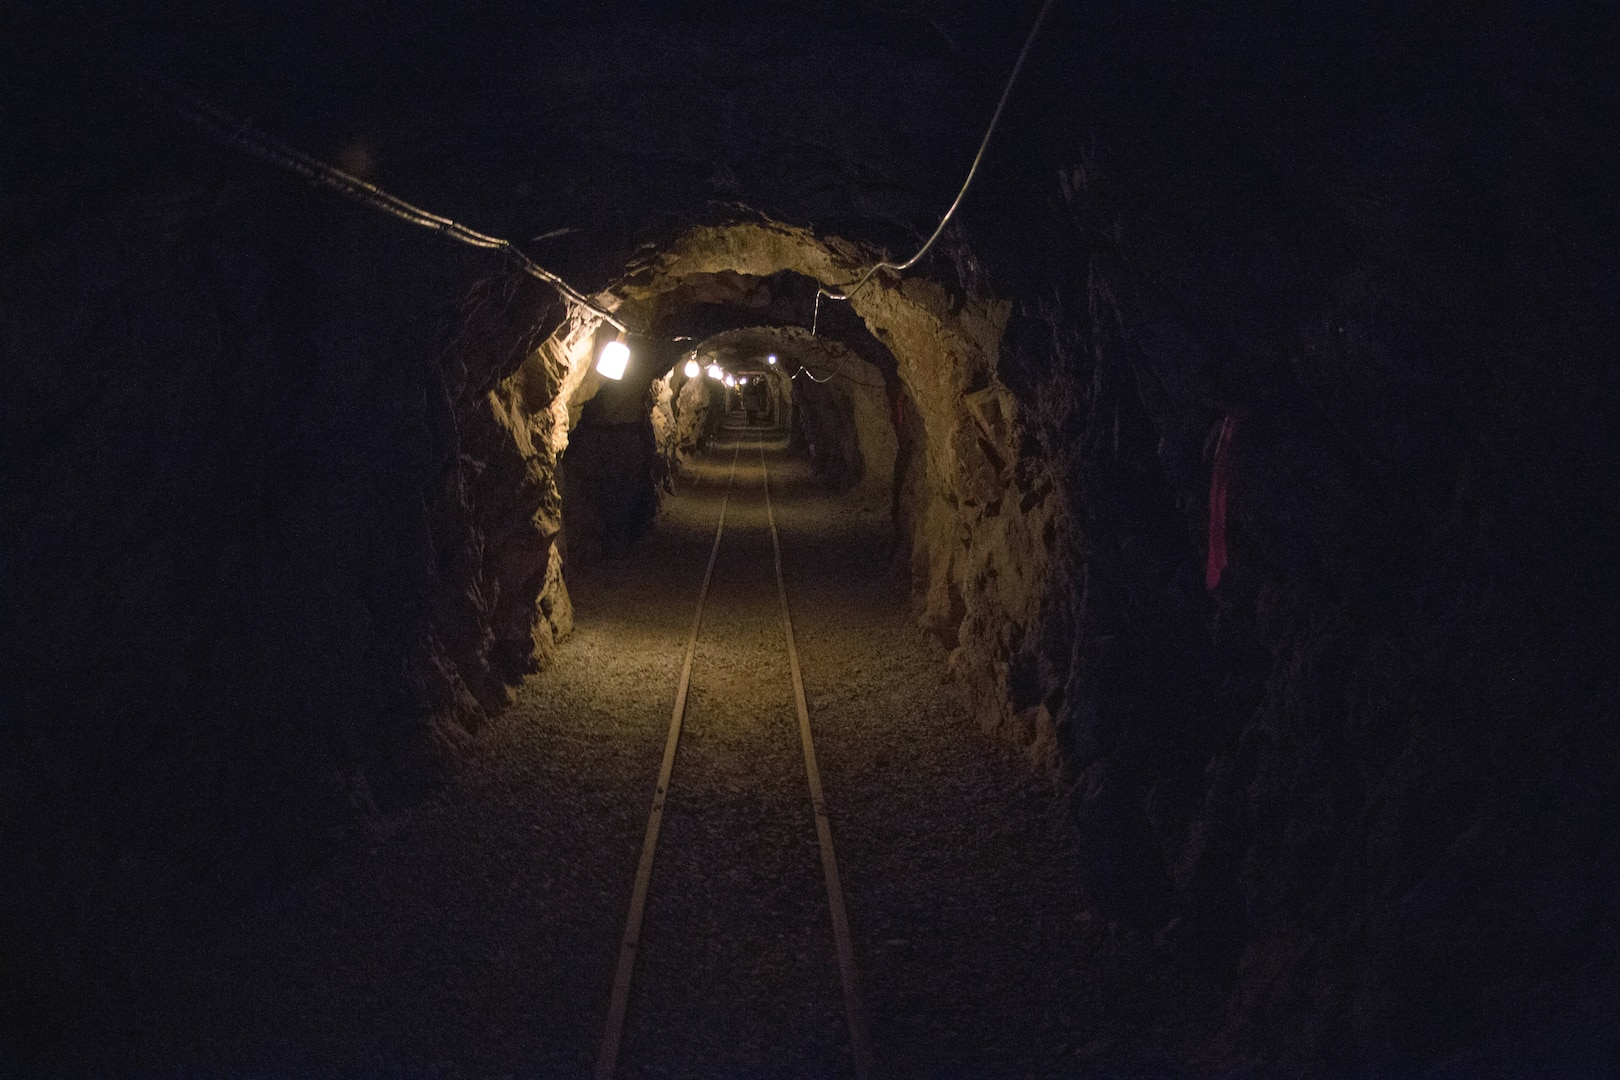 The DARPA Subterranean Challenge explores innovative approaches and new technologies to rapidly map, navigate, and search complex underground environments, Edgar Experimental Mine, April 2019 (DARPA/Colorado School of Mines)